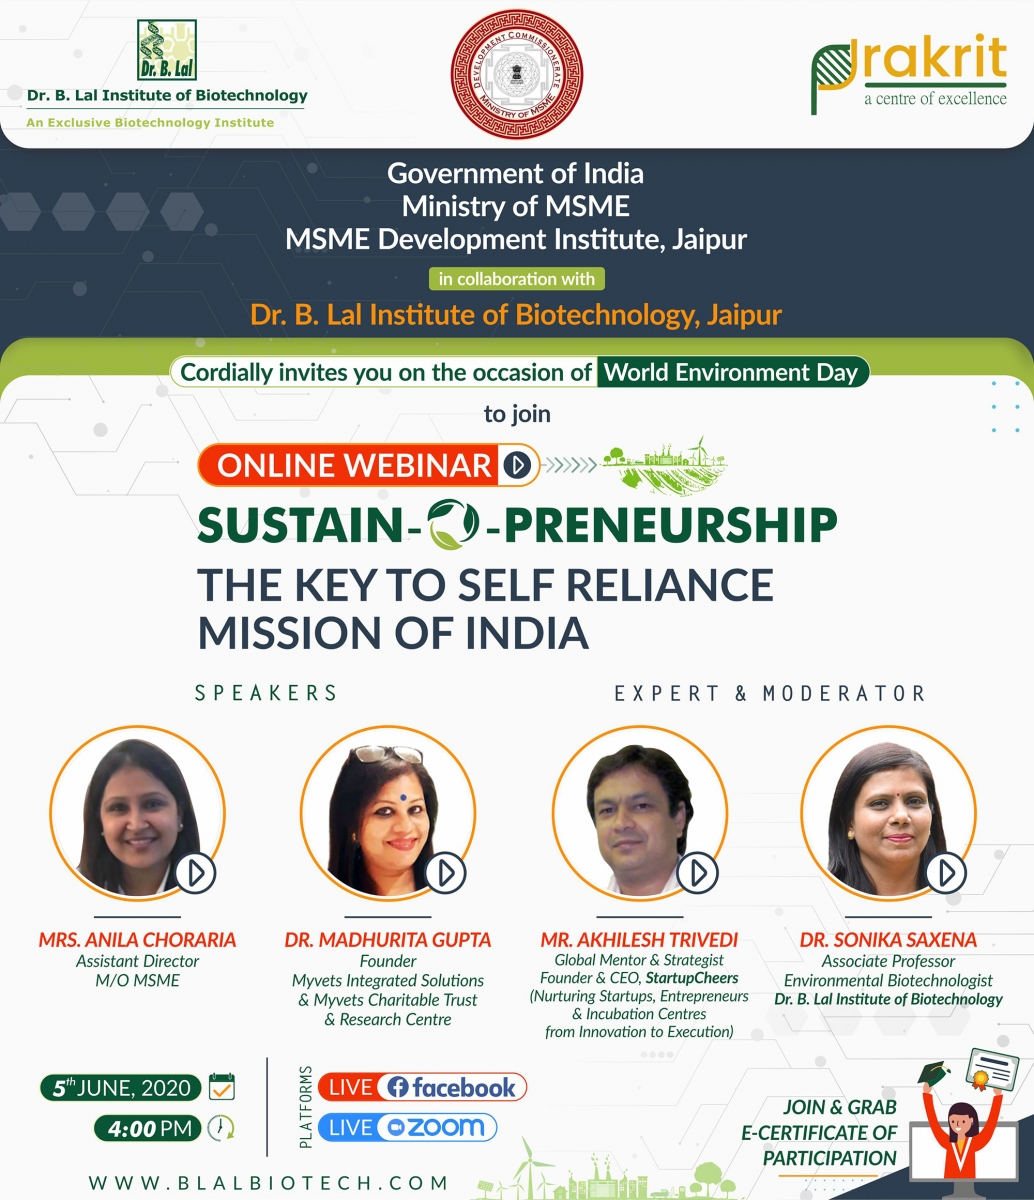 Online Webinar | SUSTAIN-O-PRENEURSHIP: The Key to Self Reliance Mission of India | Dr. B. Lal Institute of Biotechnology, Jaipur